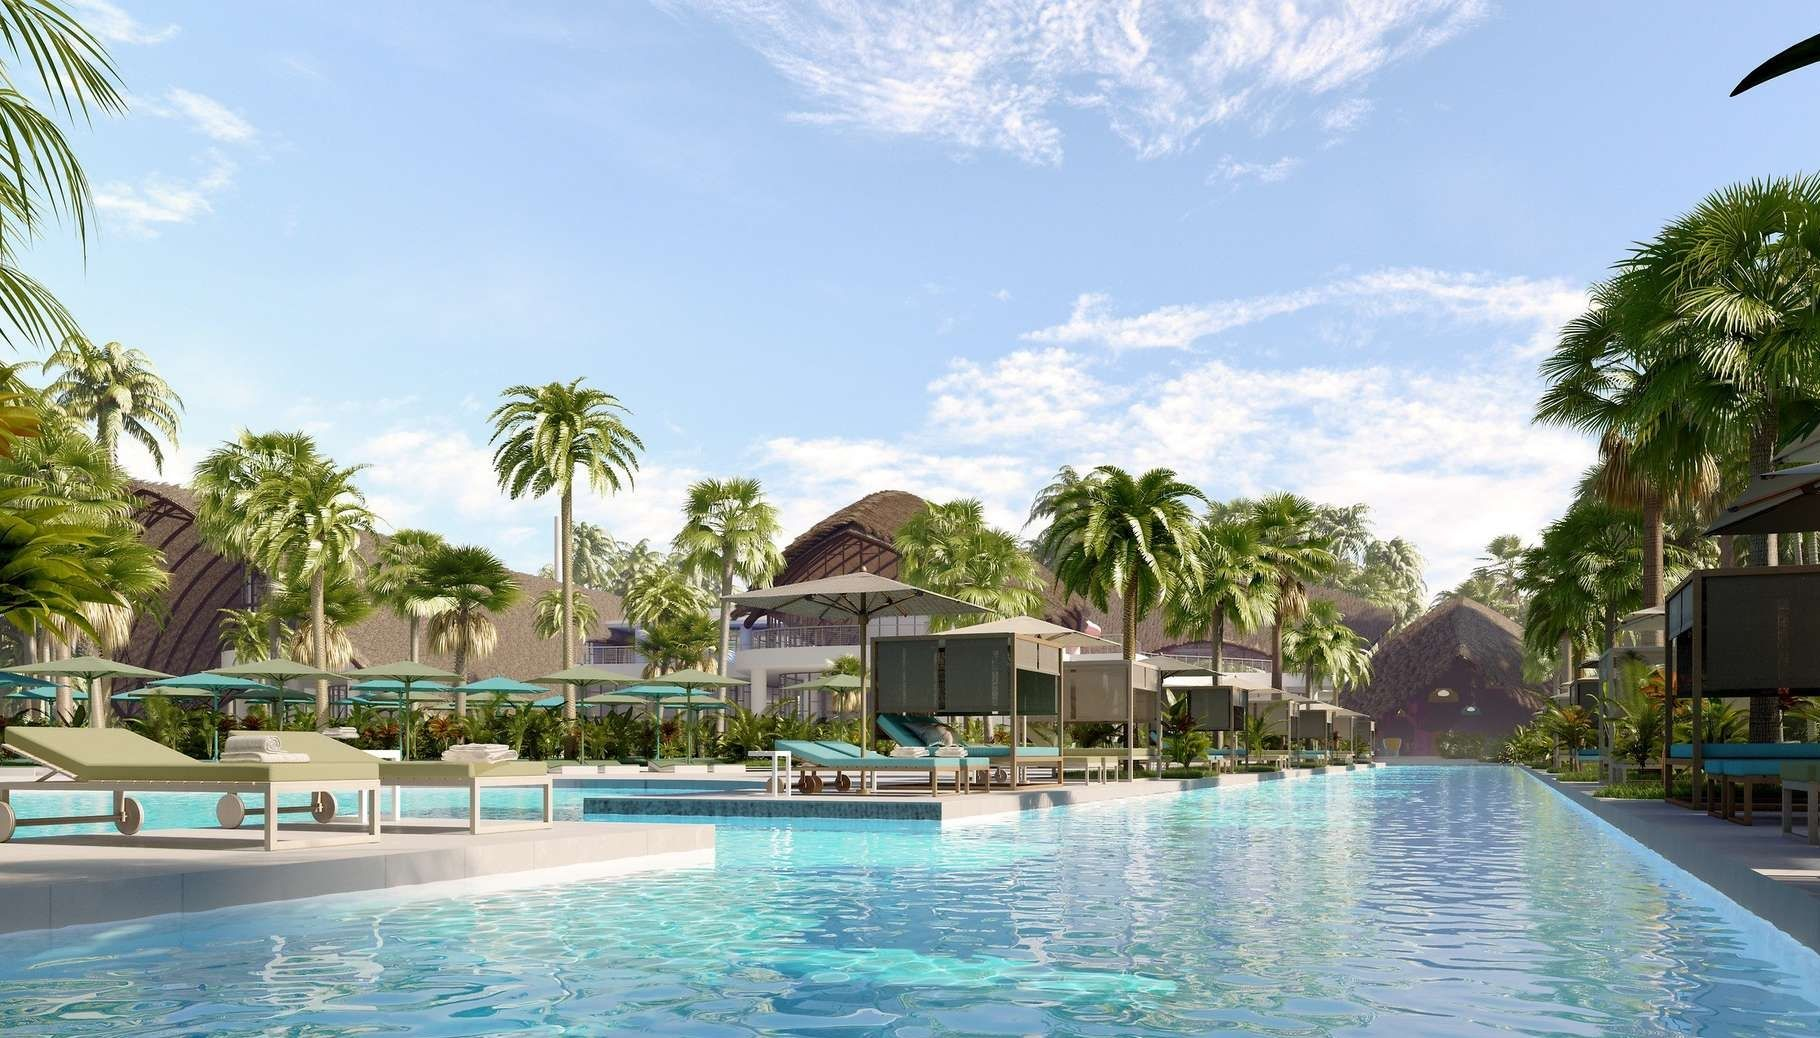 Lifestyle - Pools, sunbeds - Miches Playa Esmeralda